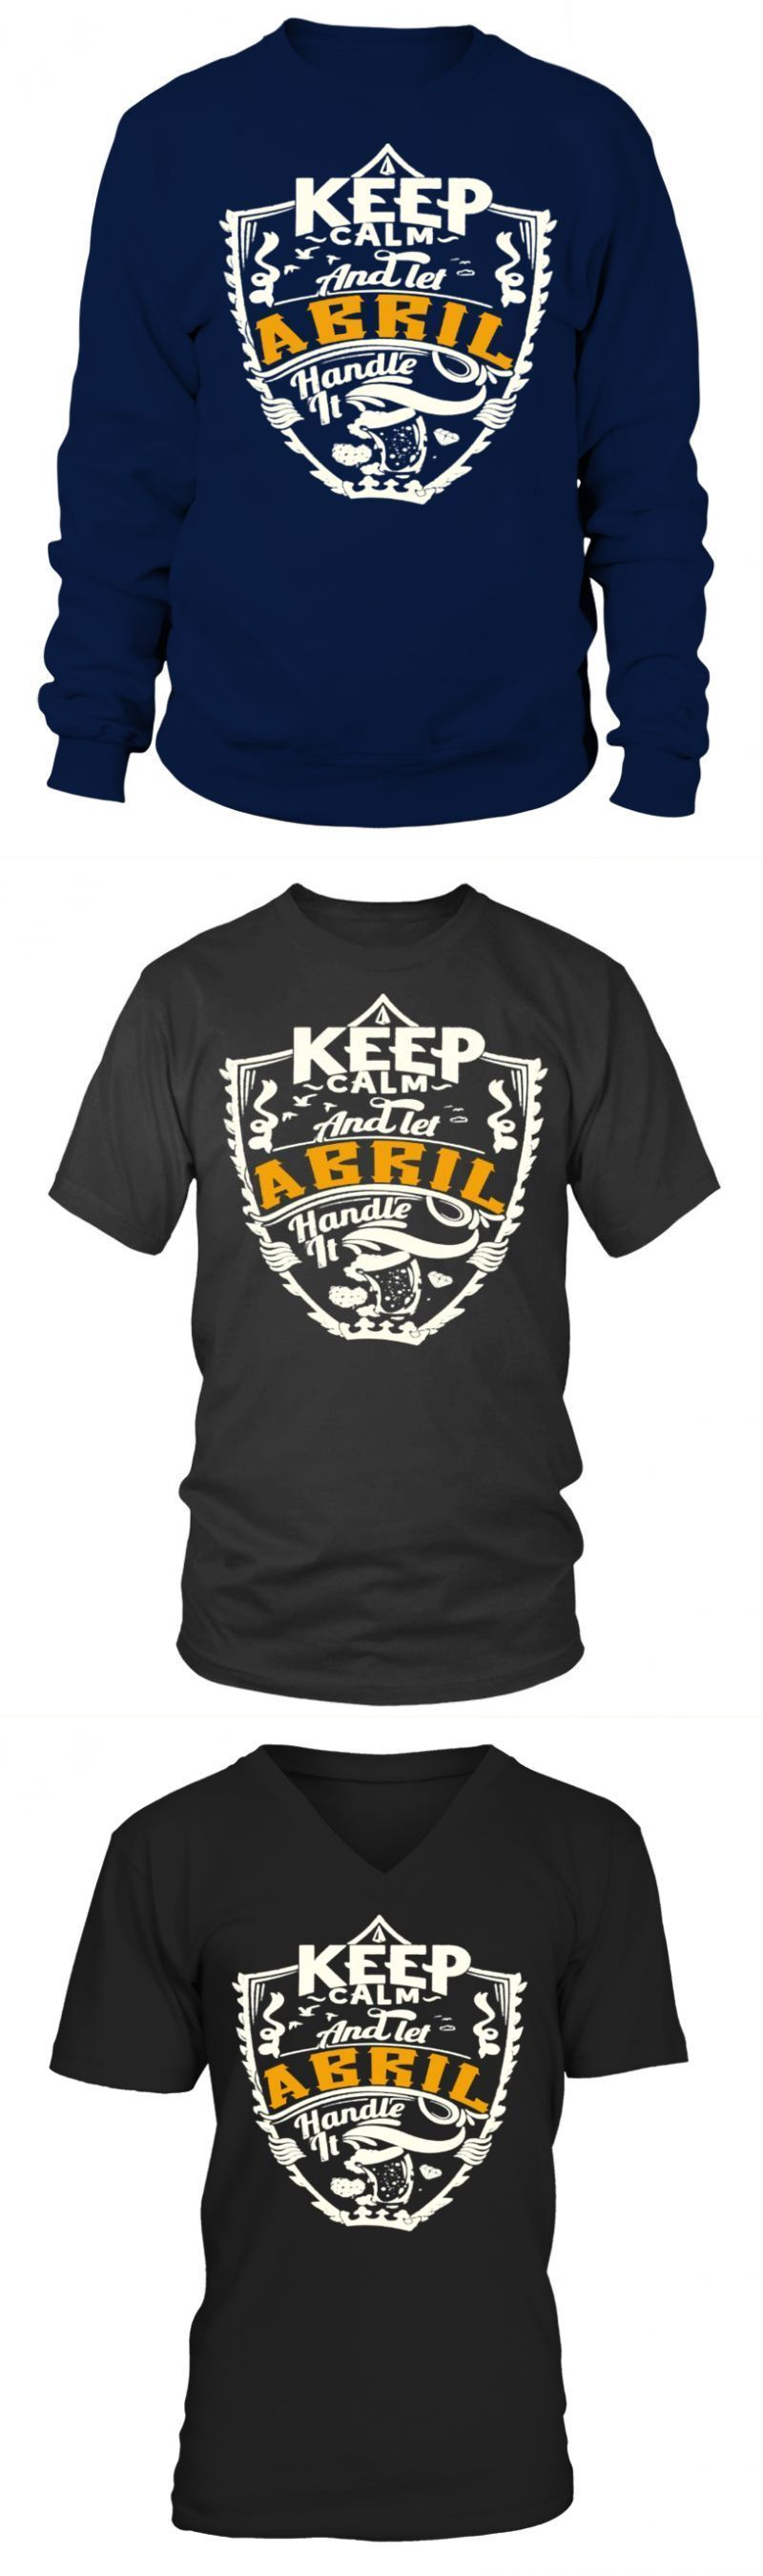 Cheap Abril T Shirt Abril Design Your Own T Shirt With Abril A